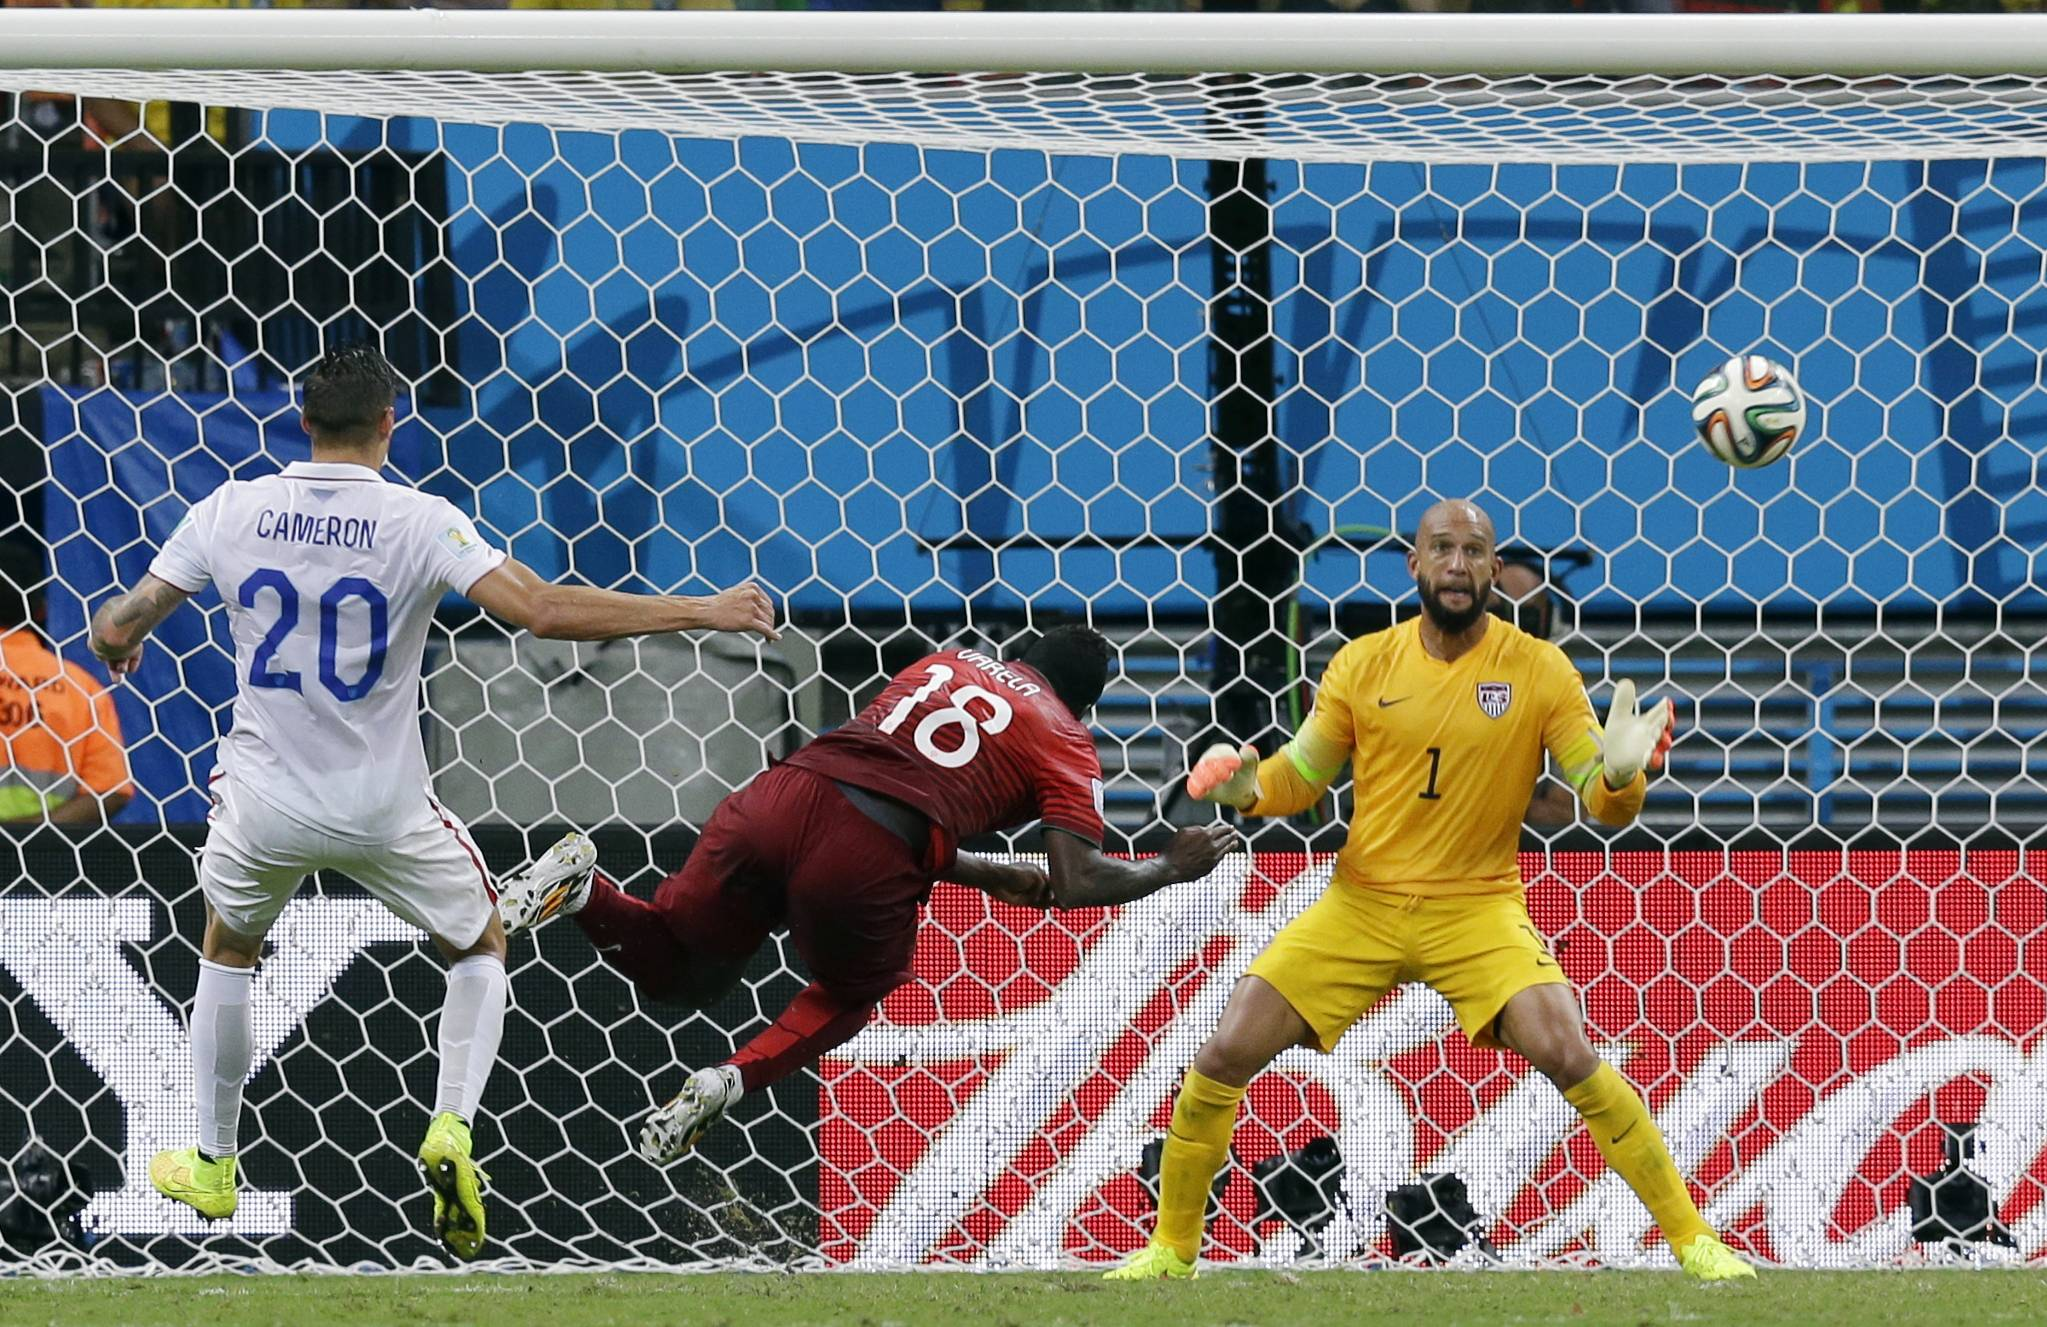 Portugal's Silvestre Varela heads the ball past U.S. goalkeeper Tim Howard on Sunday to leave the match in a 2-2 draw at the World Cup in Manaus, Brazil.